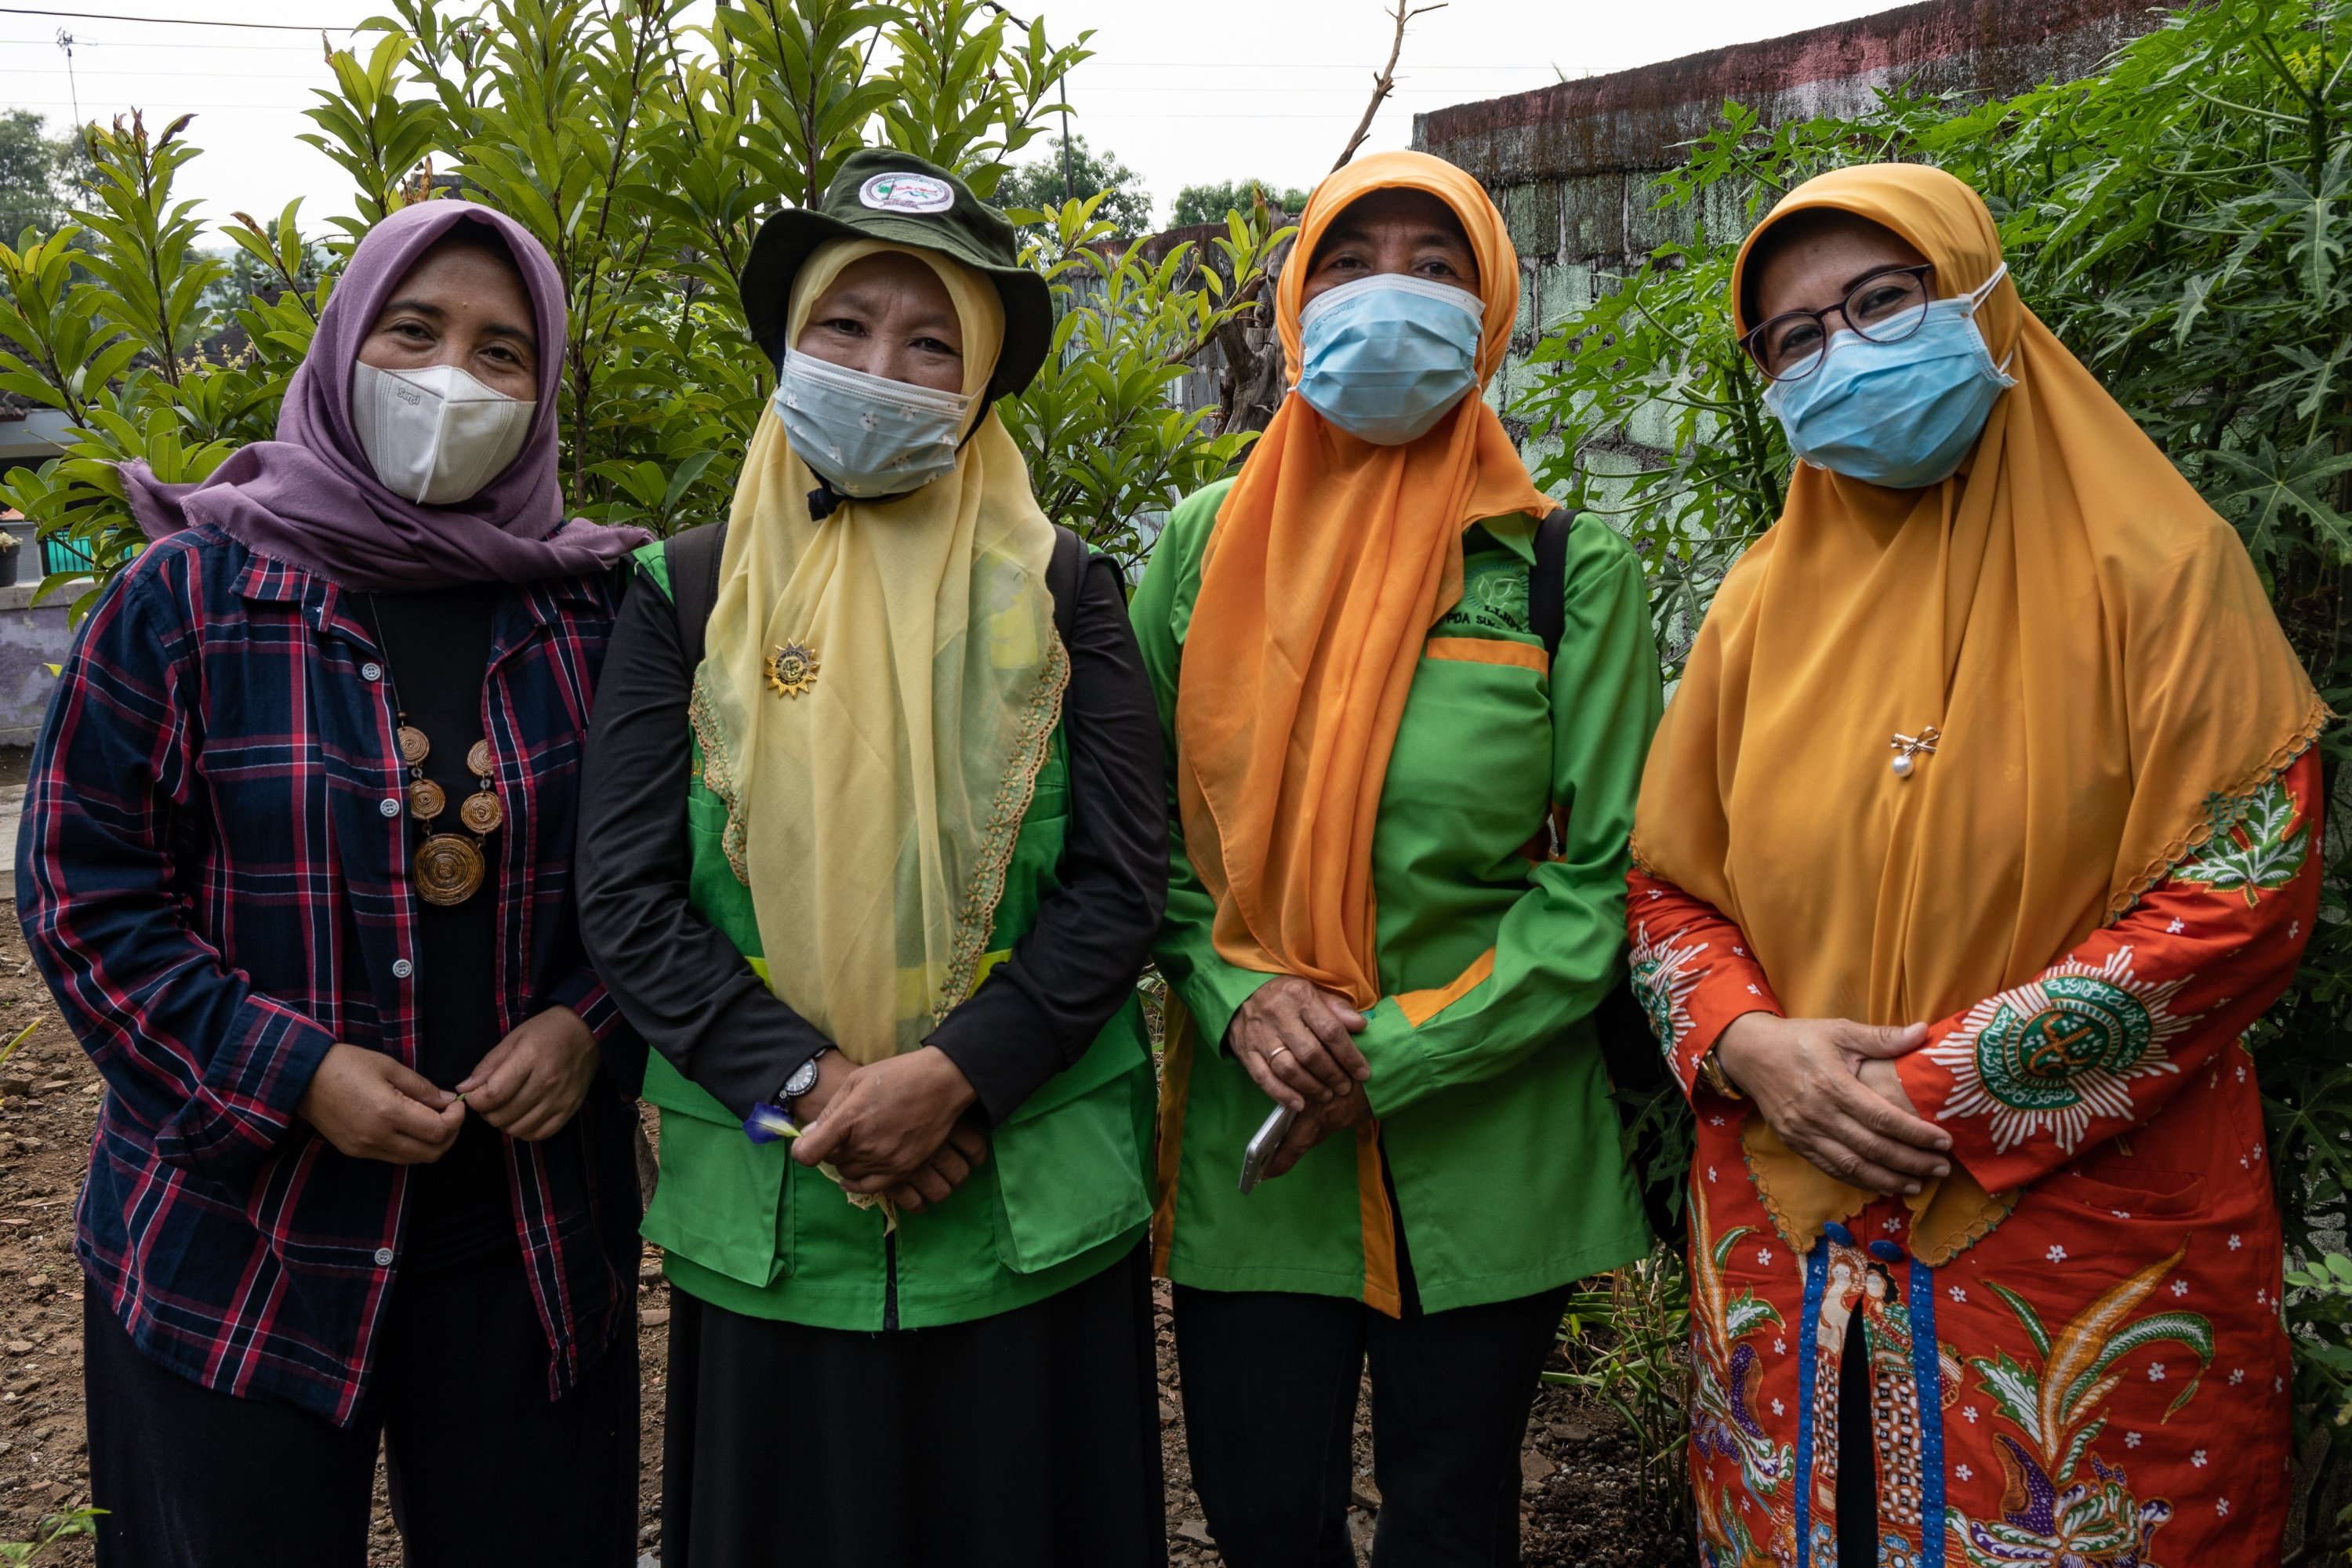 Hening Purwati Parlan (far left) the national head of 'Aisyiyah's environmental agency, together with the group's regional leaders in Sukoharjo, Central Java province, Indonesia,  May 5, 2021. (Reuters/Harry Jacques Photo)